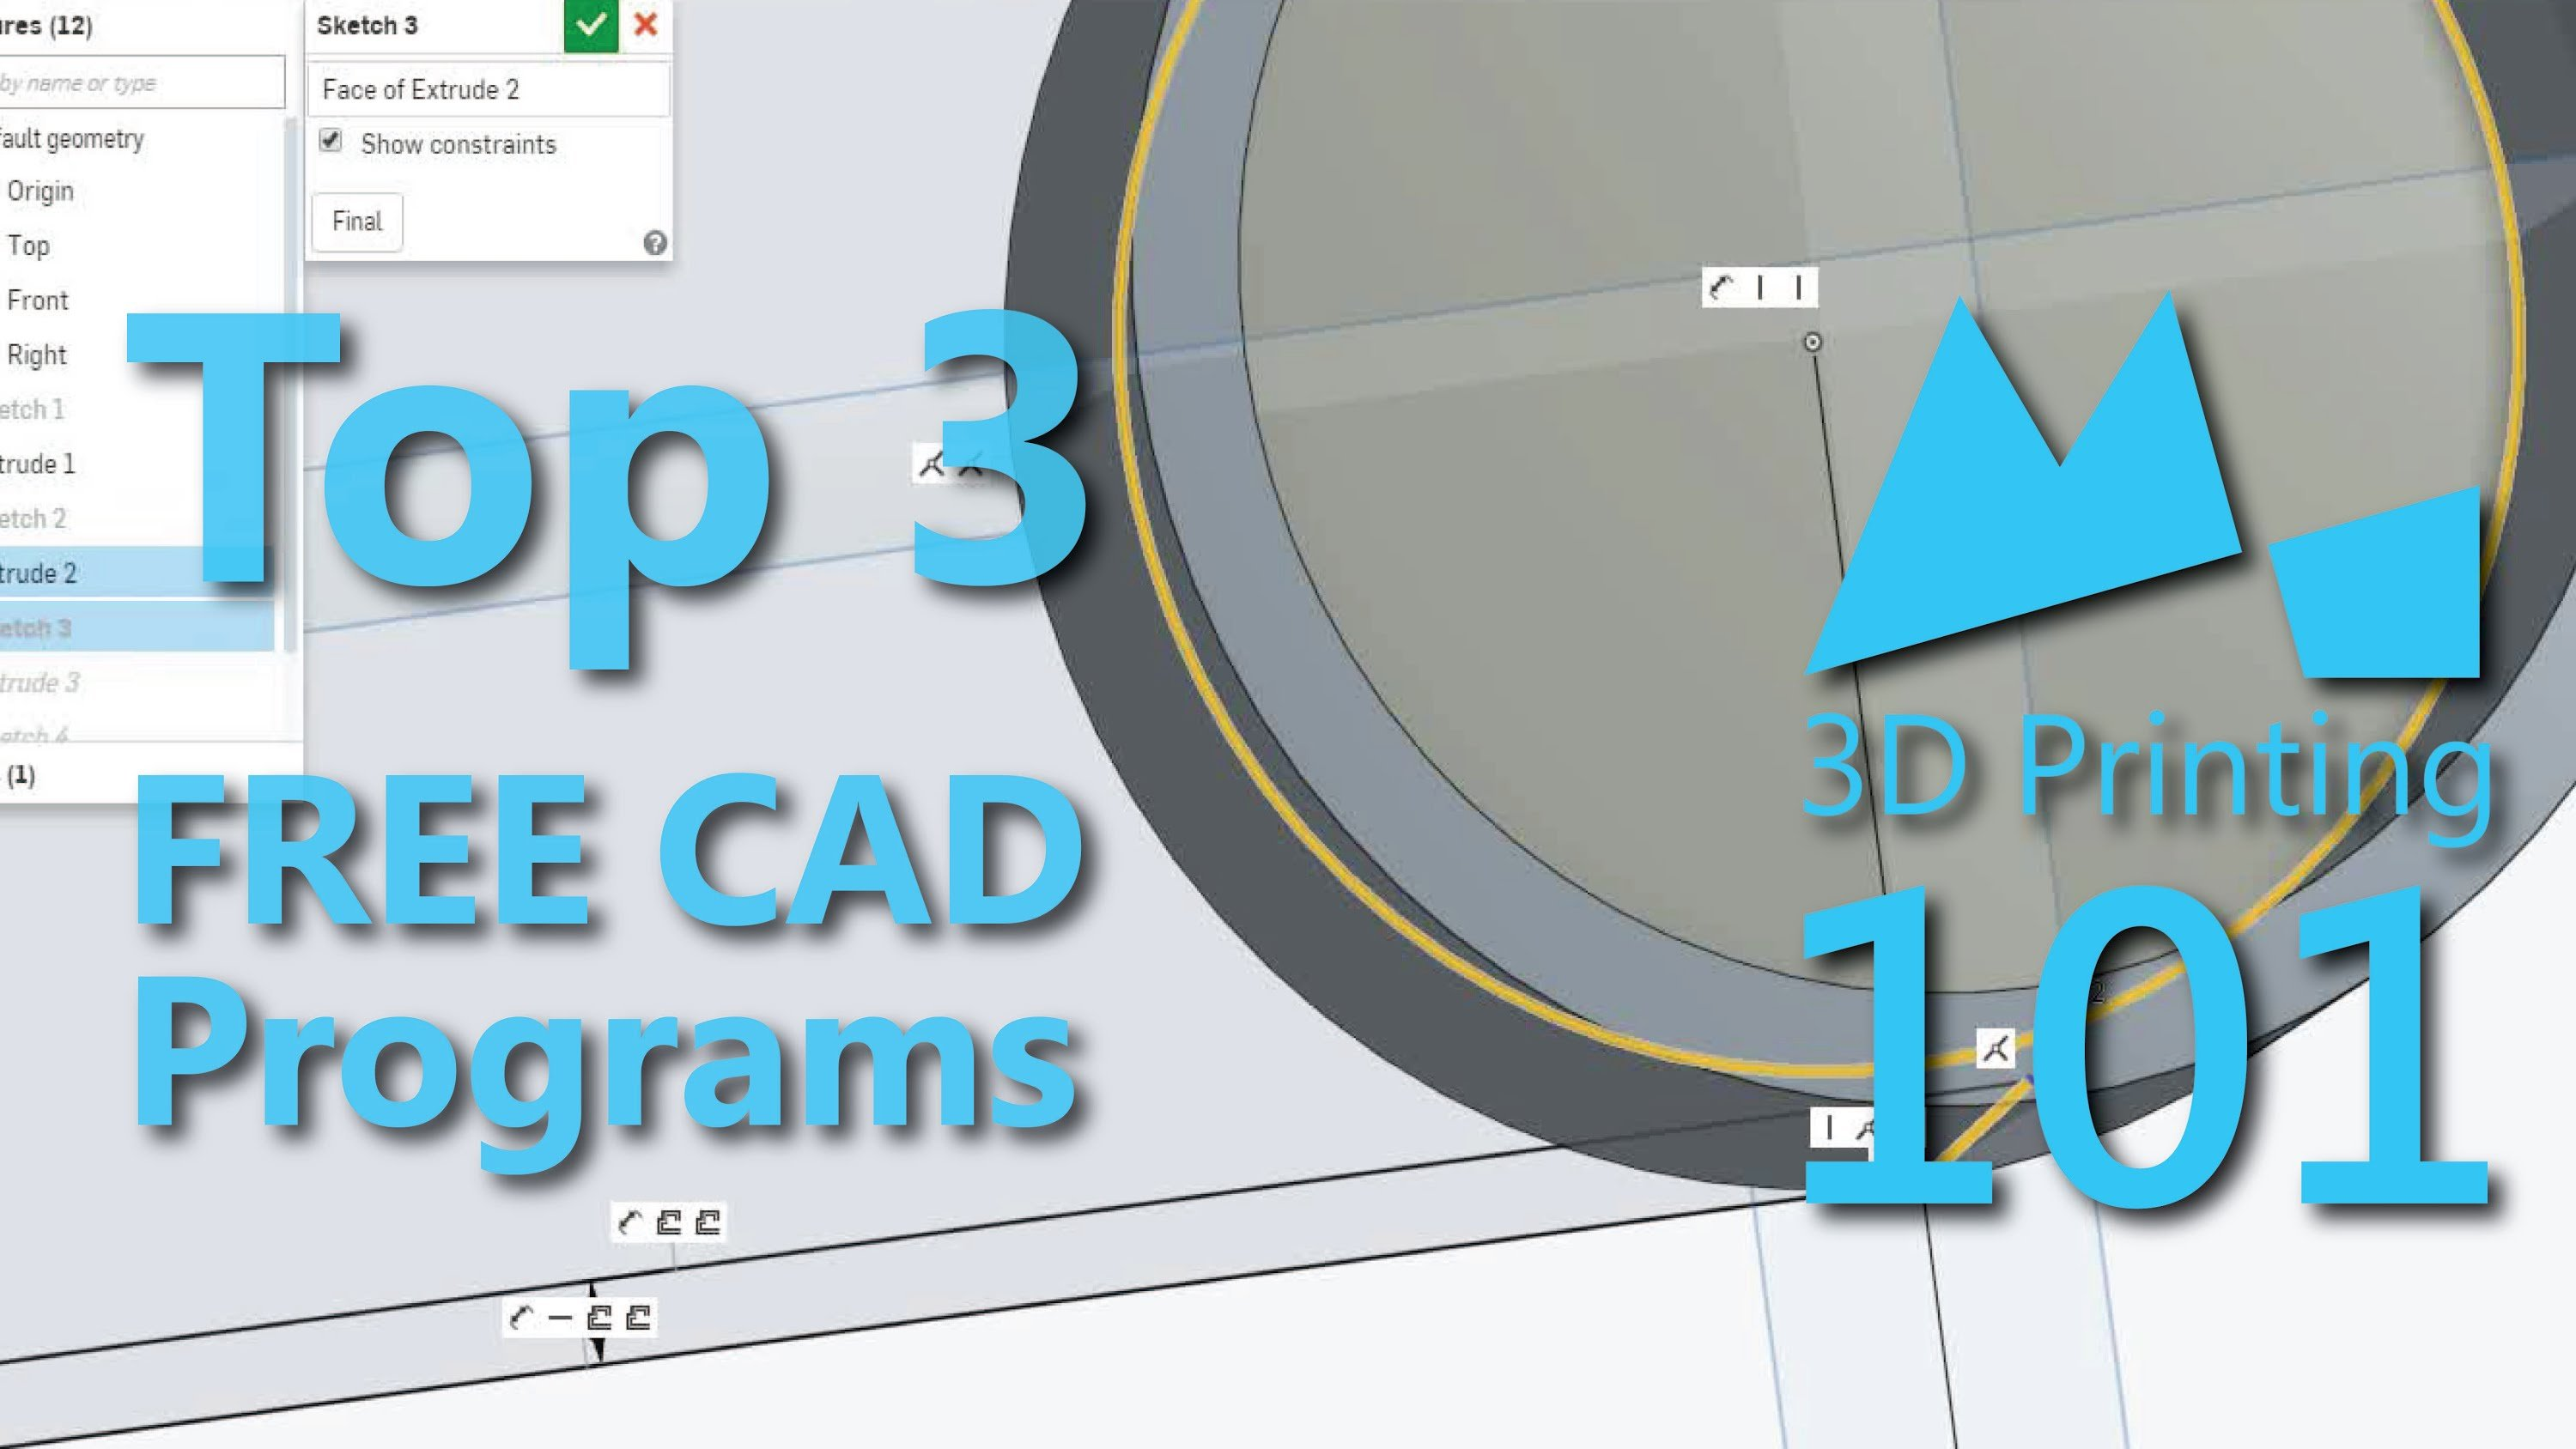 Top 3 free cad for 3dprinting adafruit industries 3d cad software